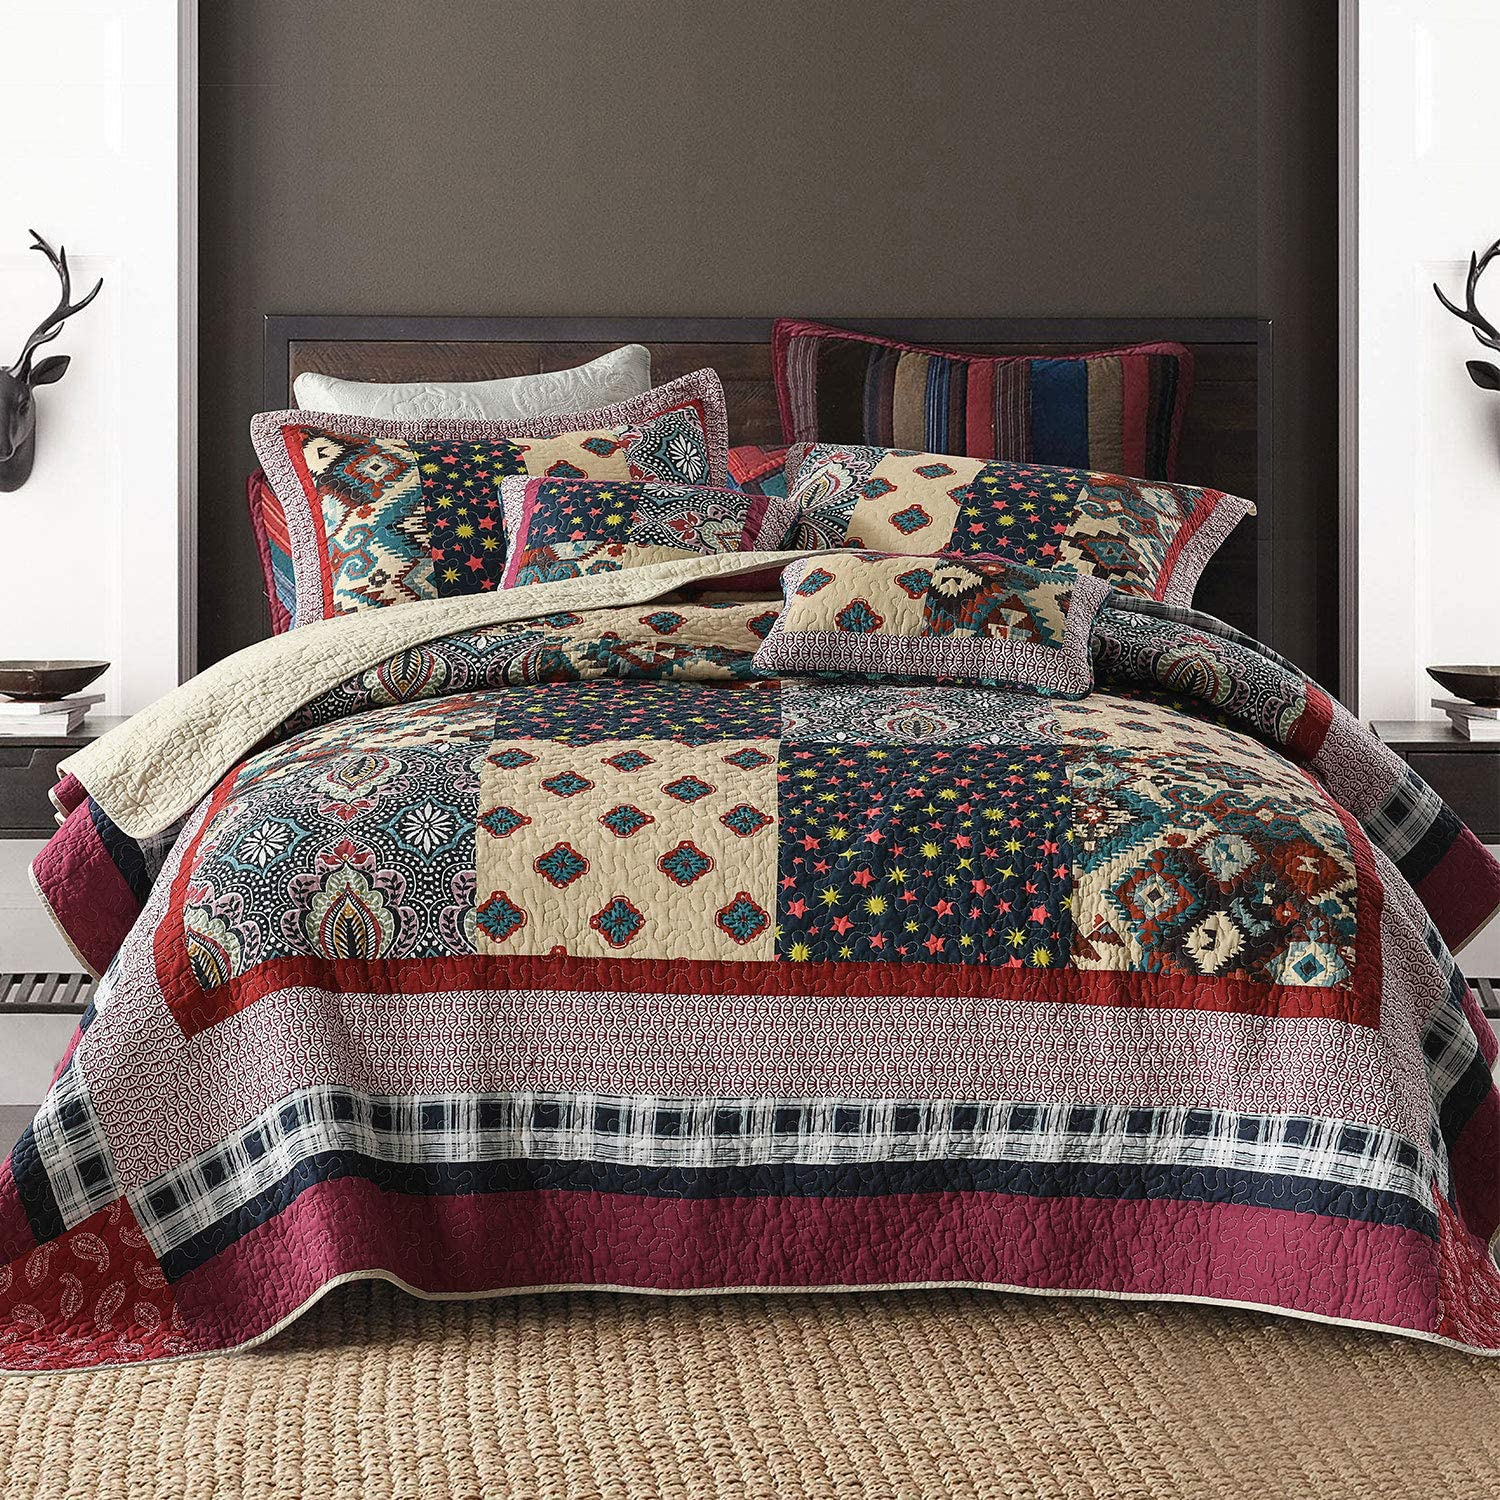 NEWLAKE Bedspread Quilt Set with Real Stitched Embroidery, Luxury Garden Pattern,Queen Size